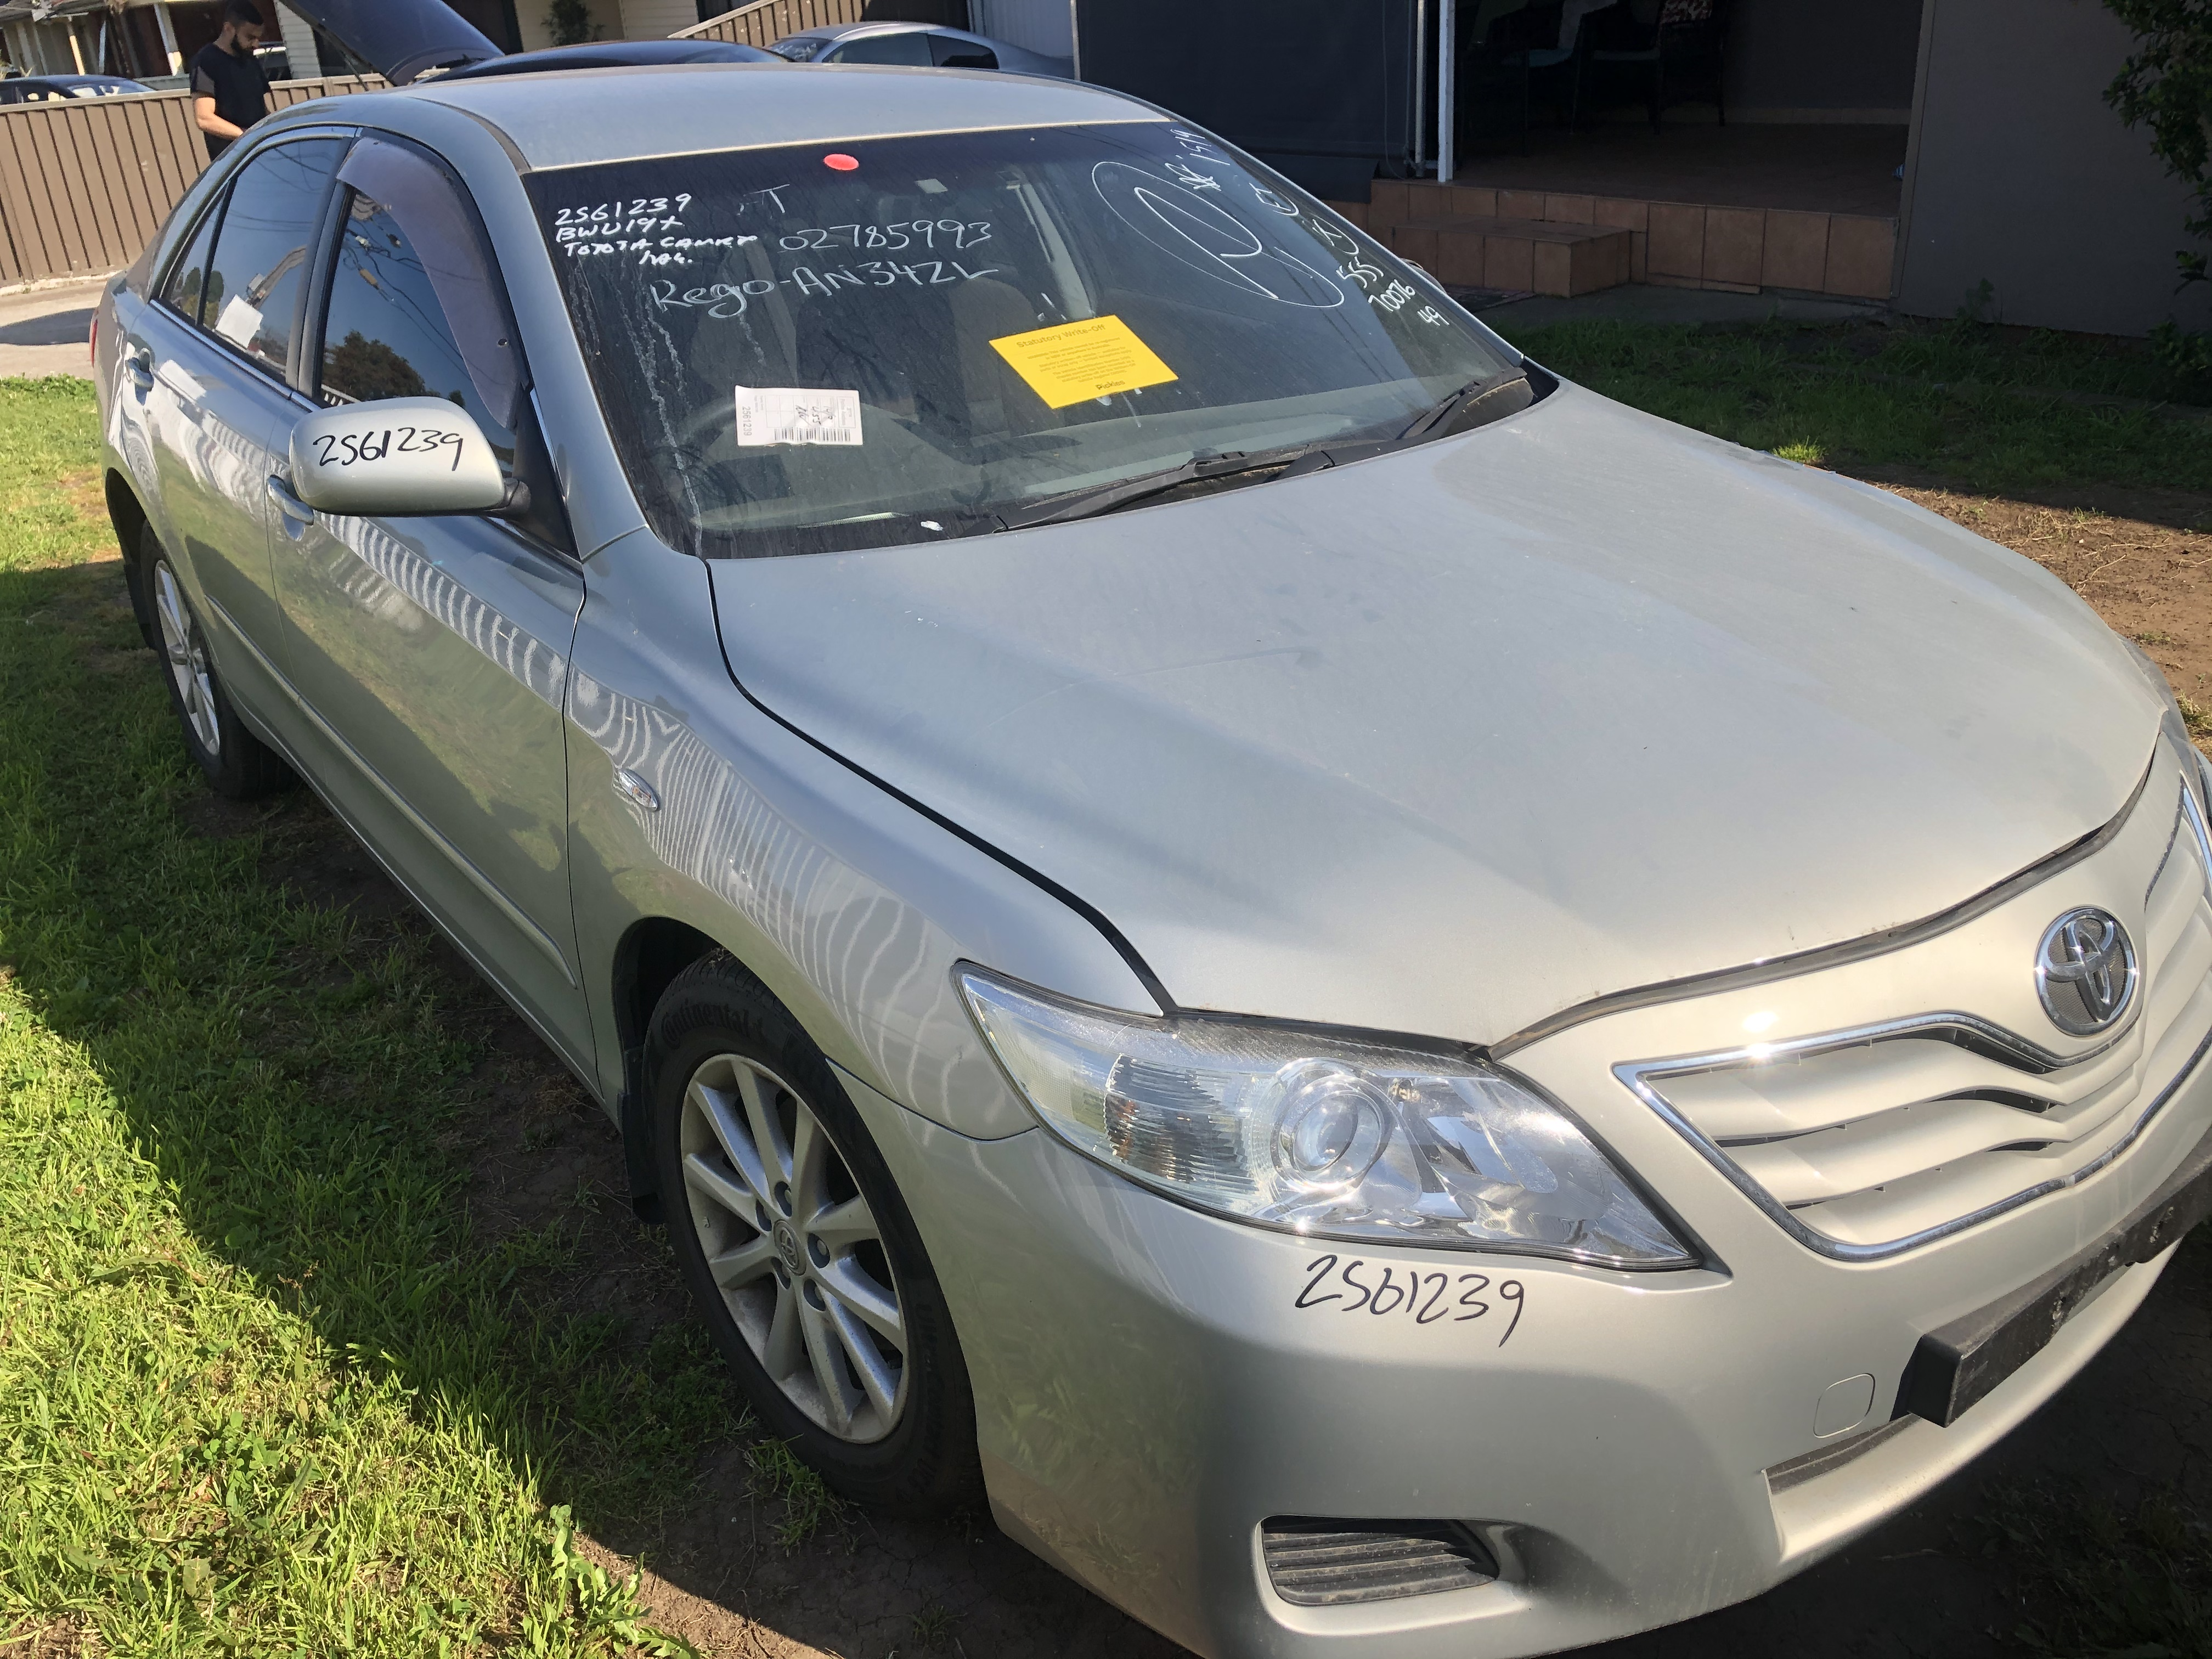 Toyota Camry2011 WRECKING All parts available Kingswood Autos WRECKERS 02 4761 9998